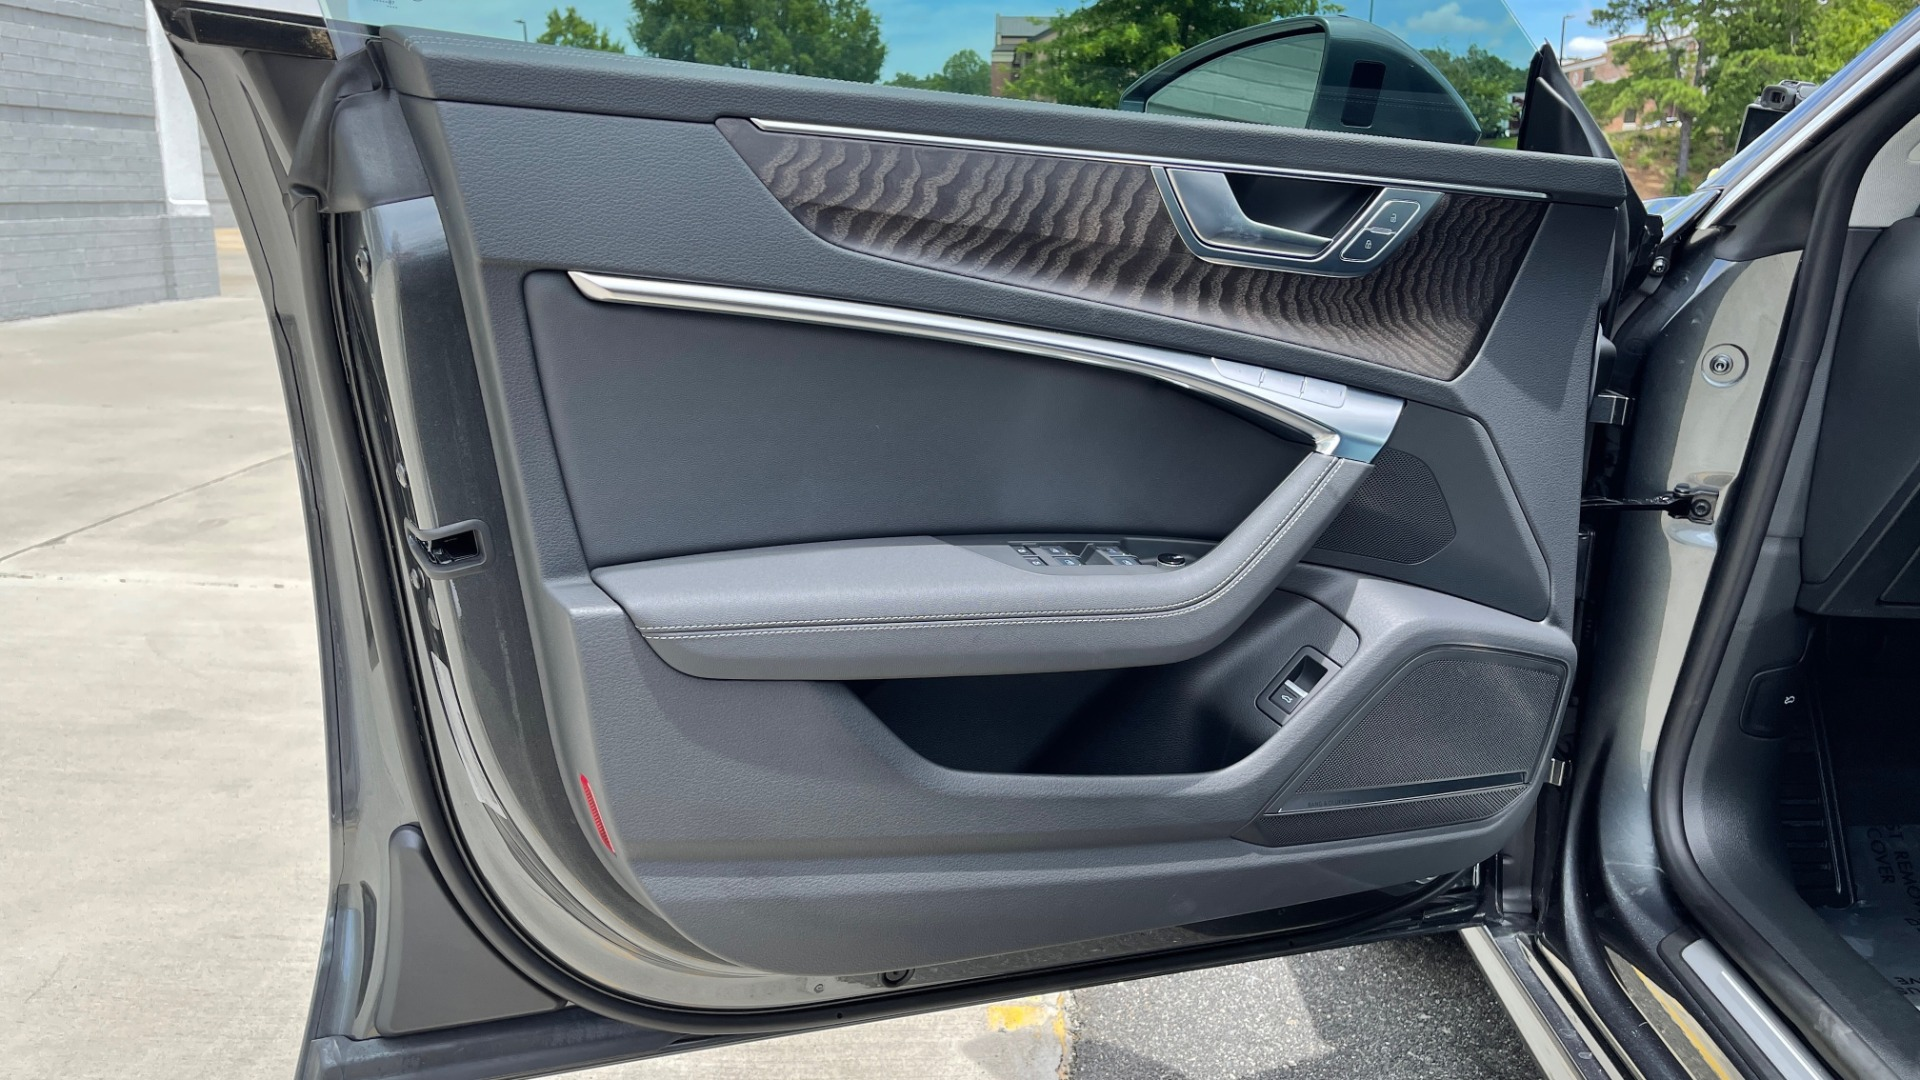 Used 2019 Audi A7 PRESTIGE 55 TFSI 3.0T / NAV / B&O SND / SUNROOF / S-LINE / 21IN WHLS / REAR for sale $66,995 at Formula Imports in Charlotte NC 28227 30